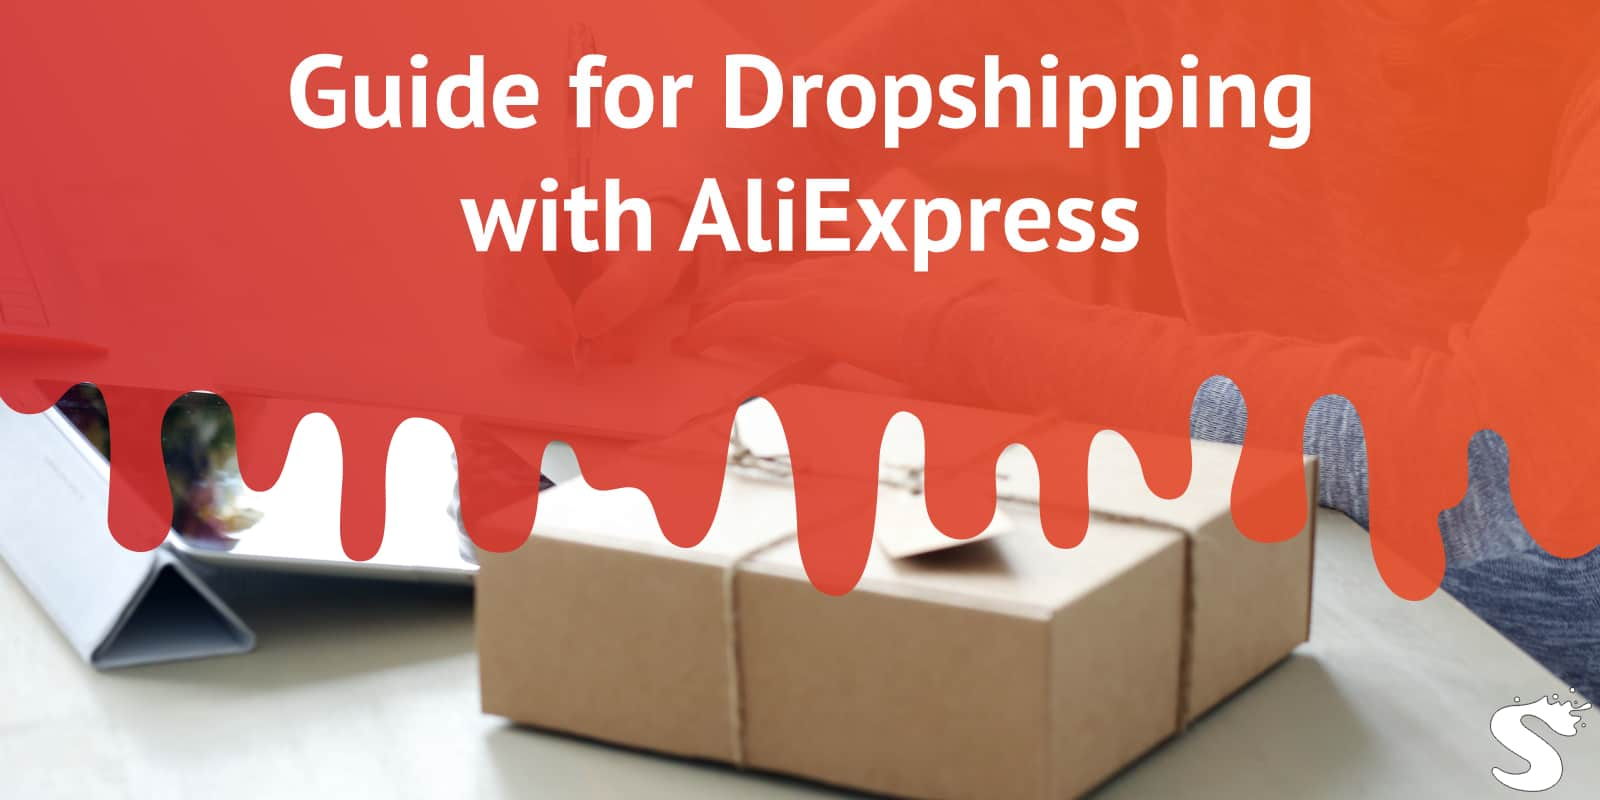 Guide for Dropshipping with AliExpress